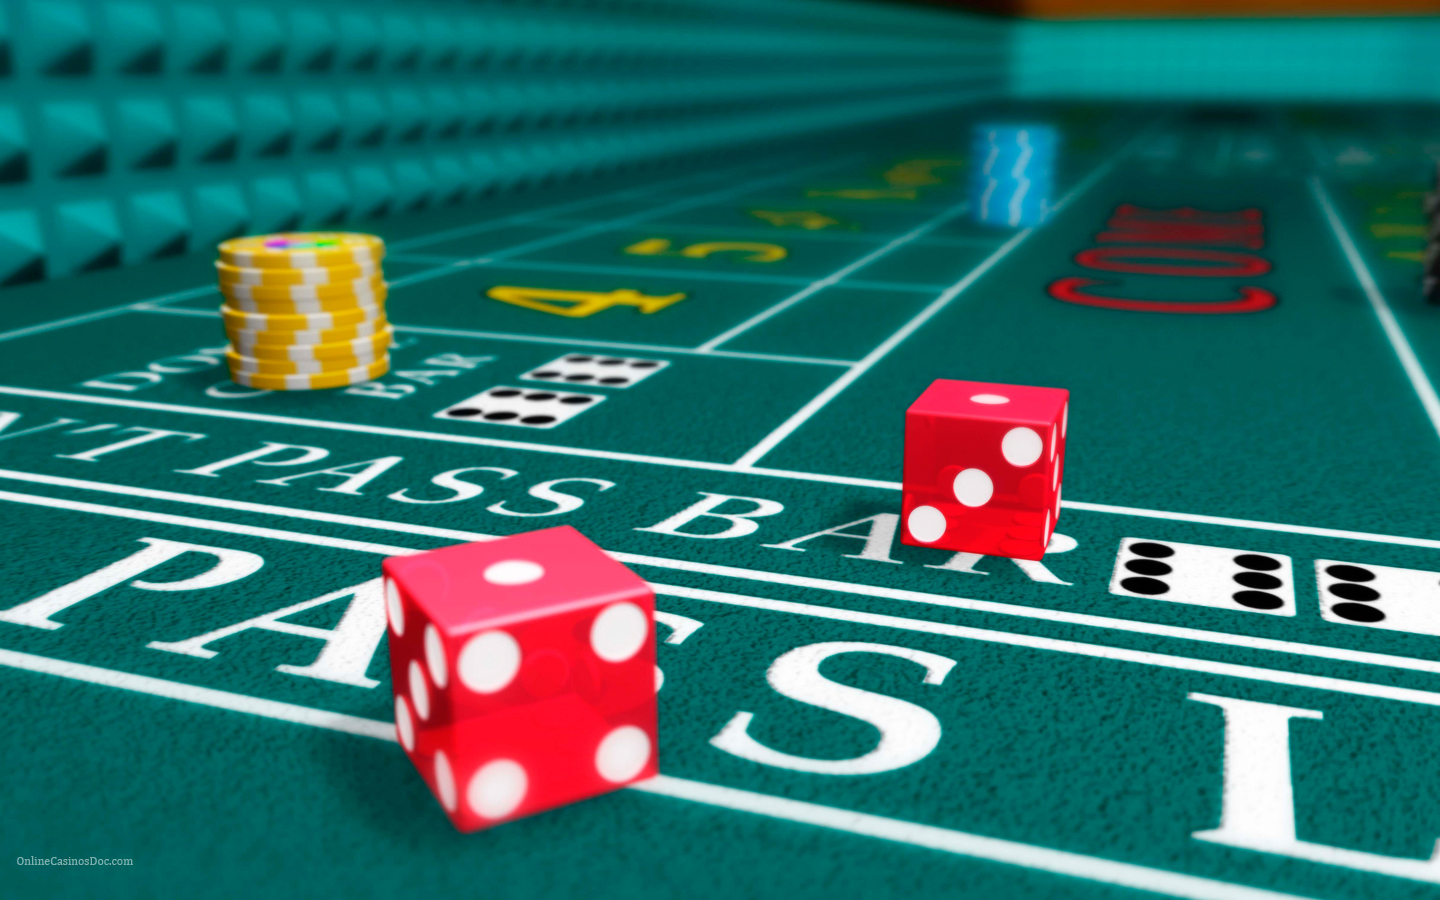 How Much Do You Charge For Gambling?